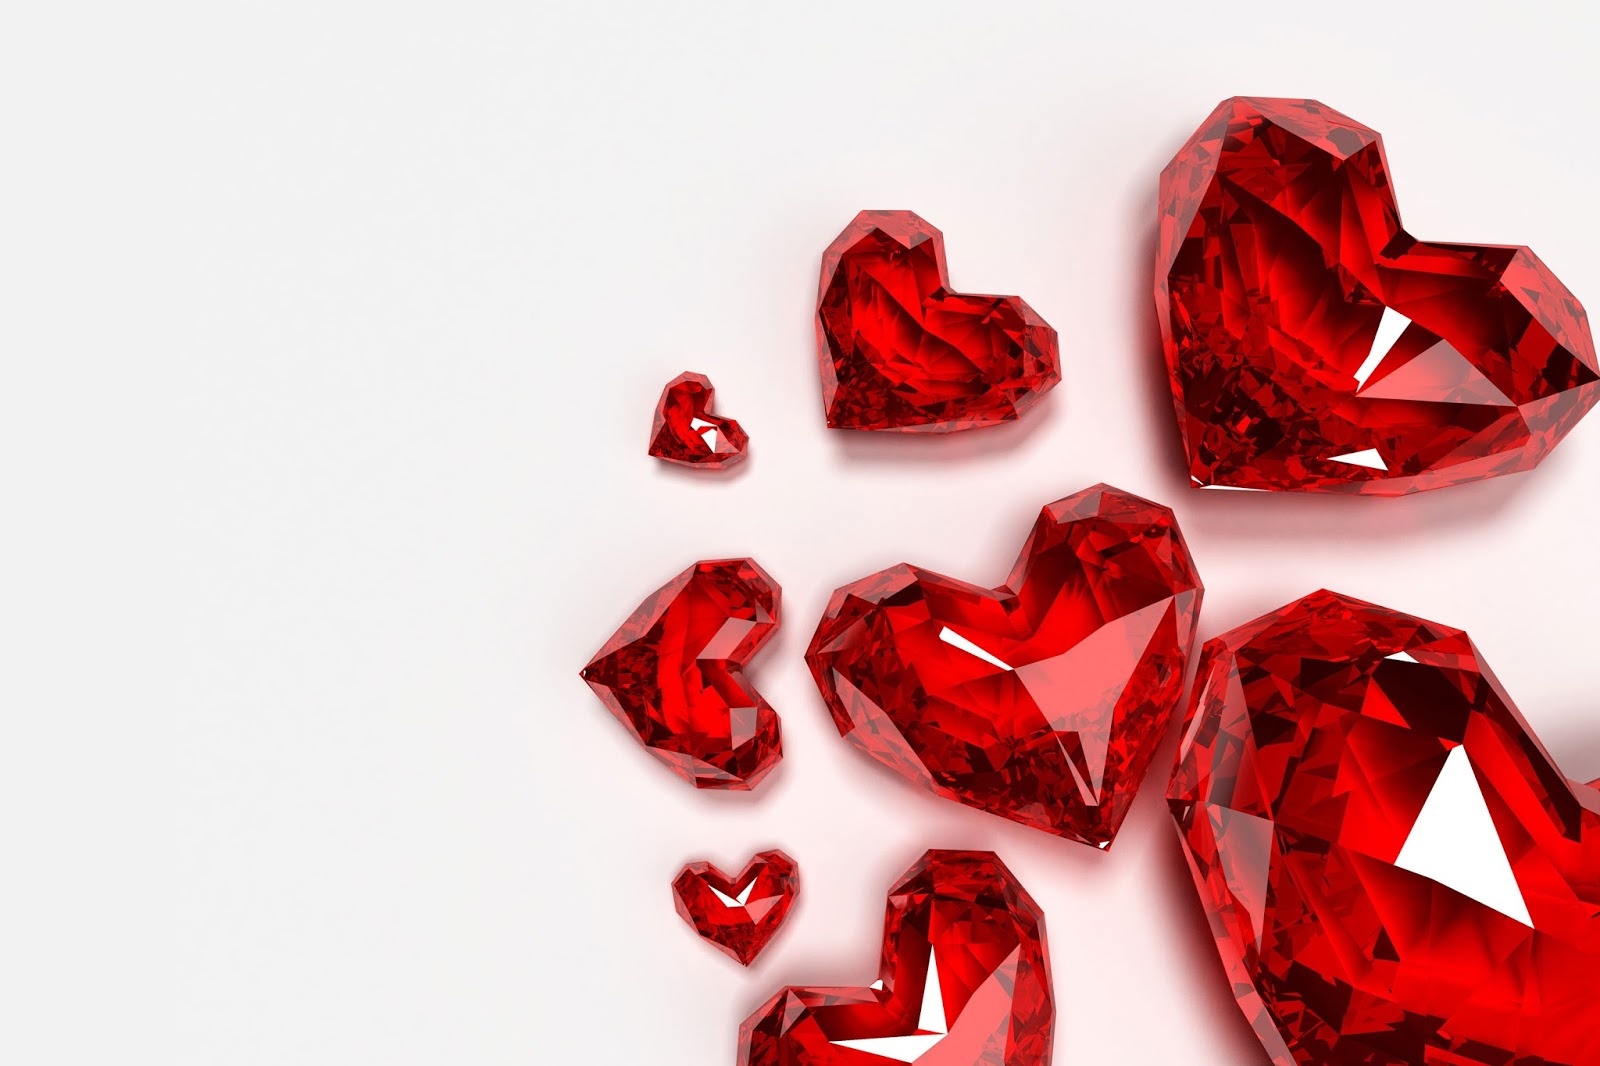 50 Romantic Love Wallpapers For You Description Red Crystal Heart